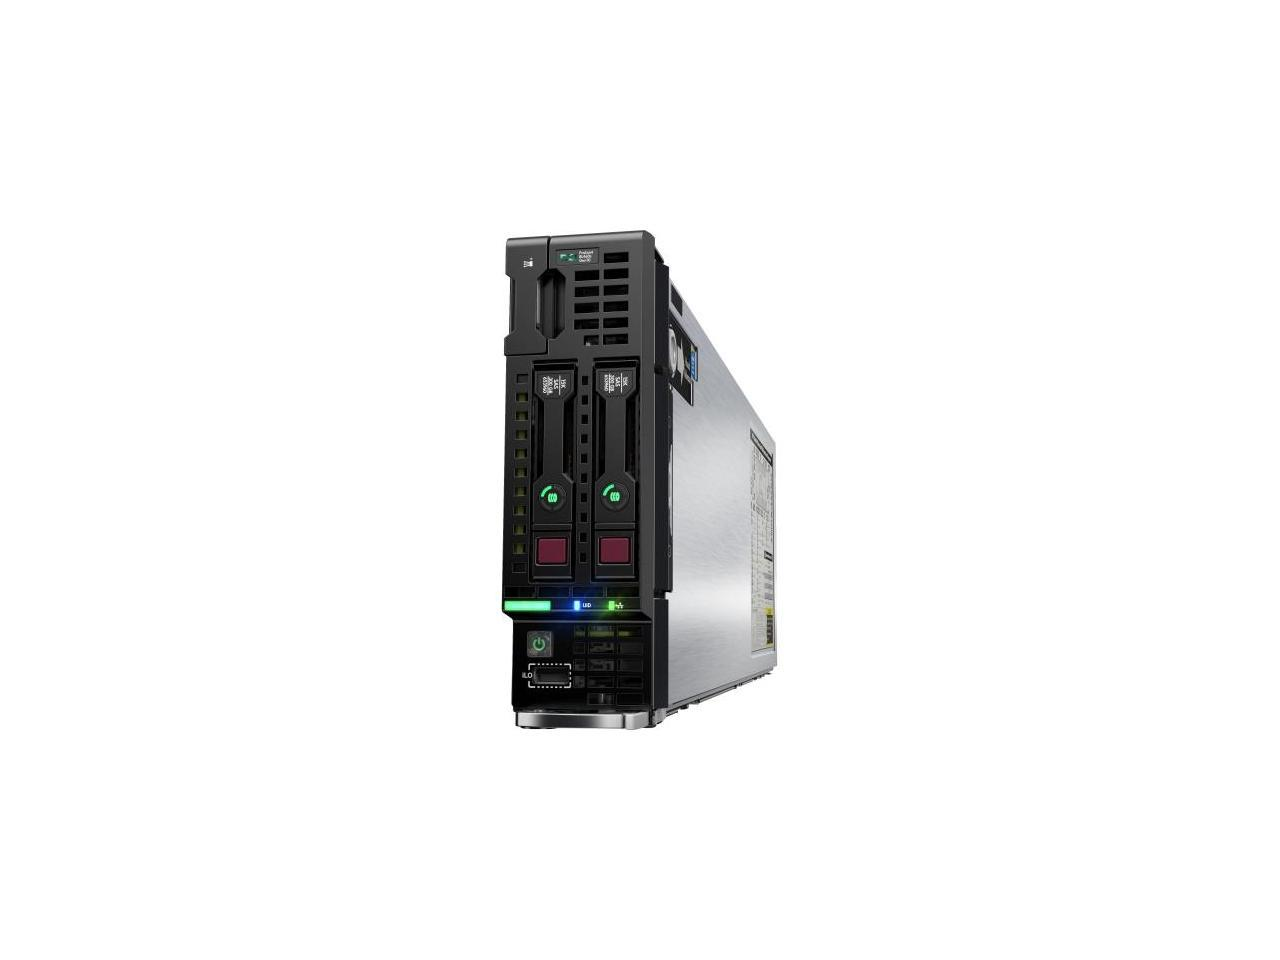 Onboard RAID 2X 300GB 15K SAS 2.5 8GB DDR3 2X Intel Xeon E5-2640 V2 2.0GHz 8C HP ProLiant BL460c G8 2-Bay SFF Blade Server Certified Refurbished